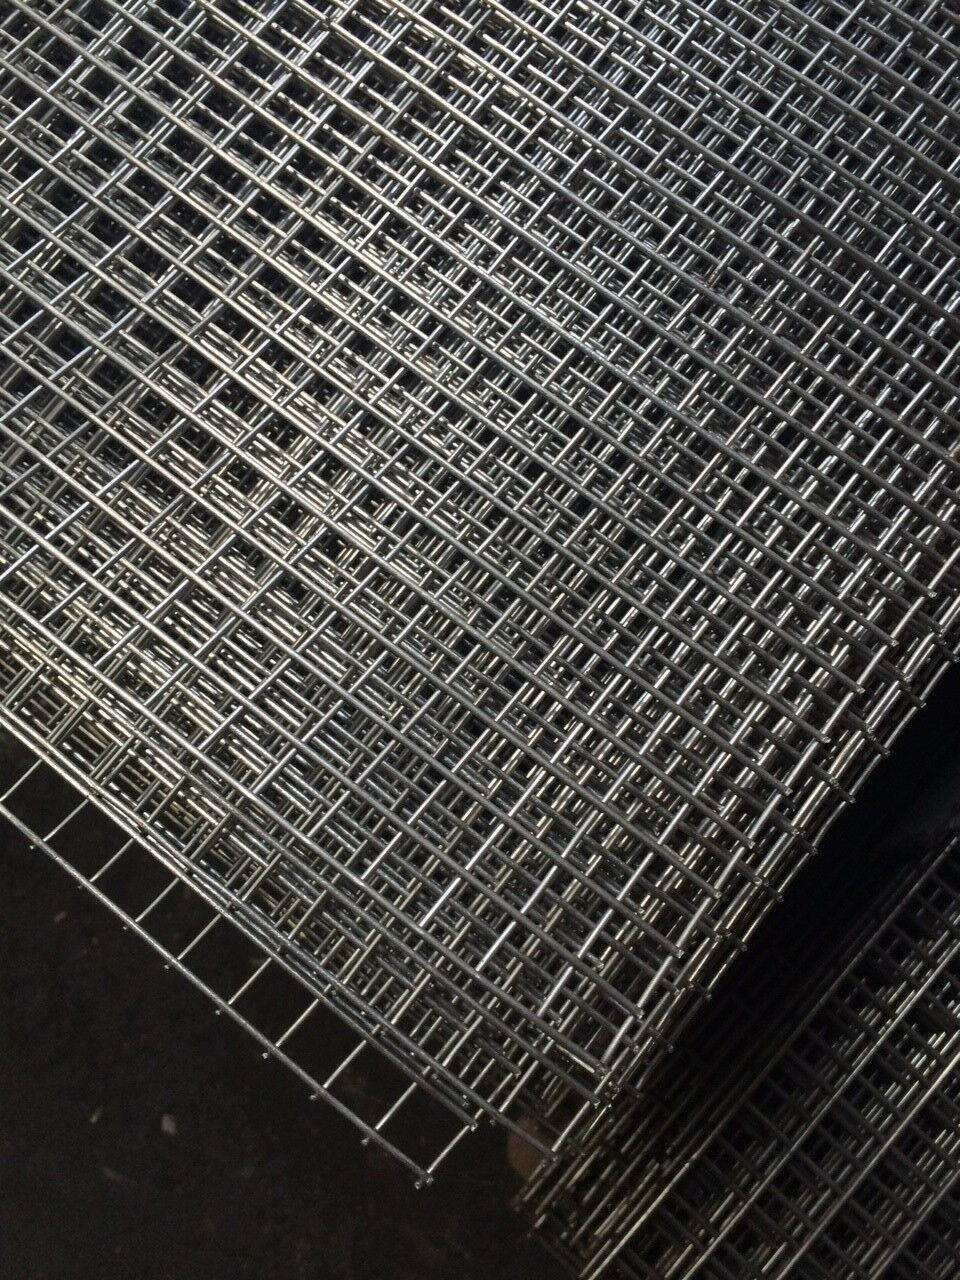 Welded Wire Mesh : Stainless steel welded wire mesh panels